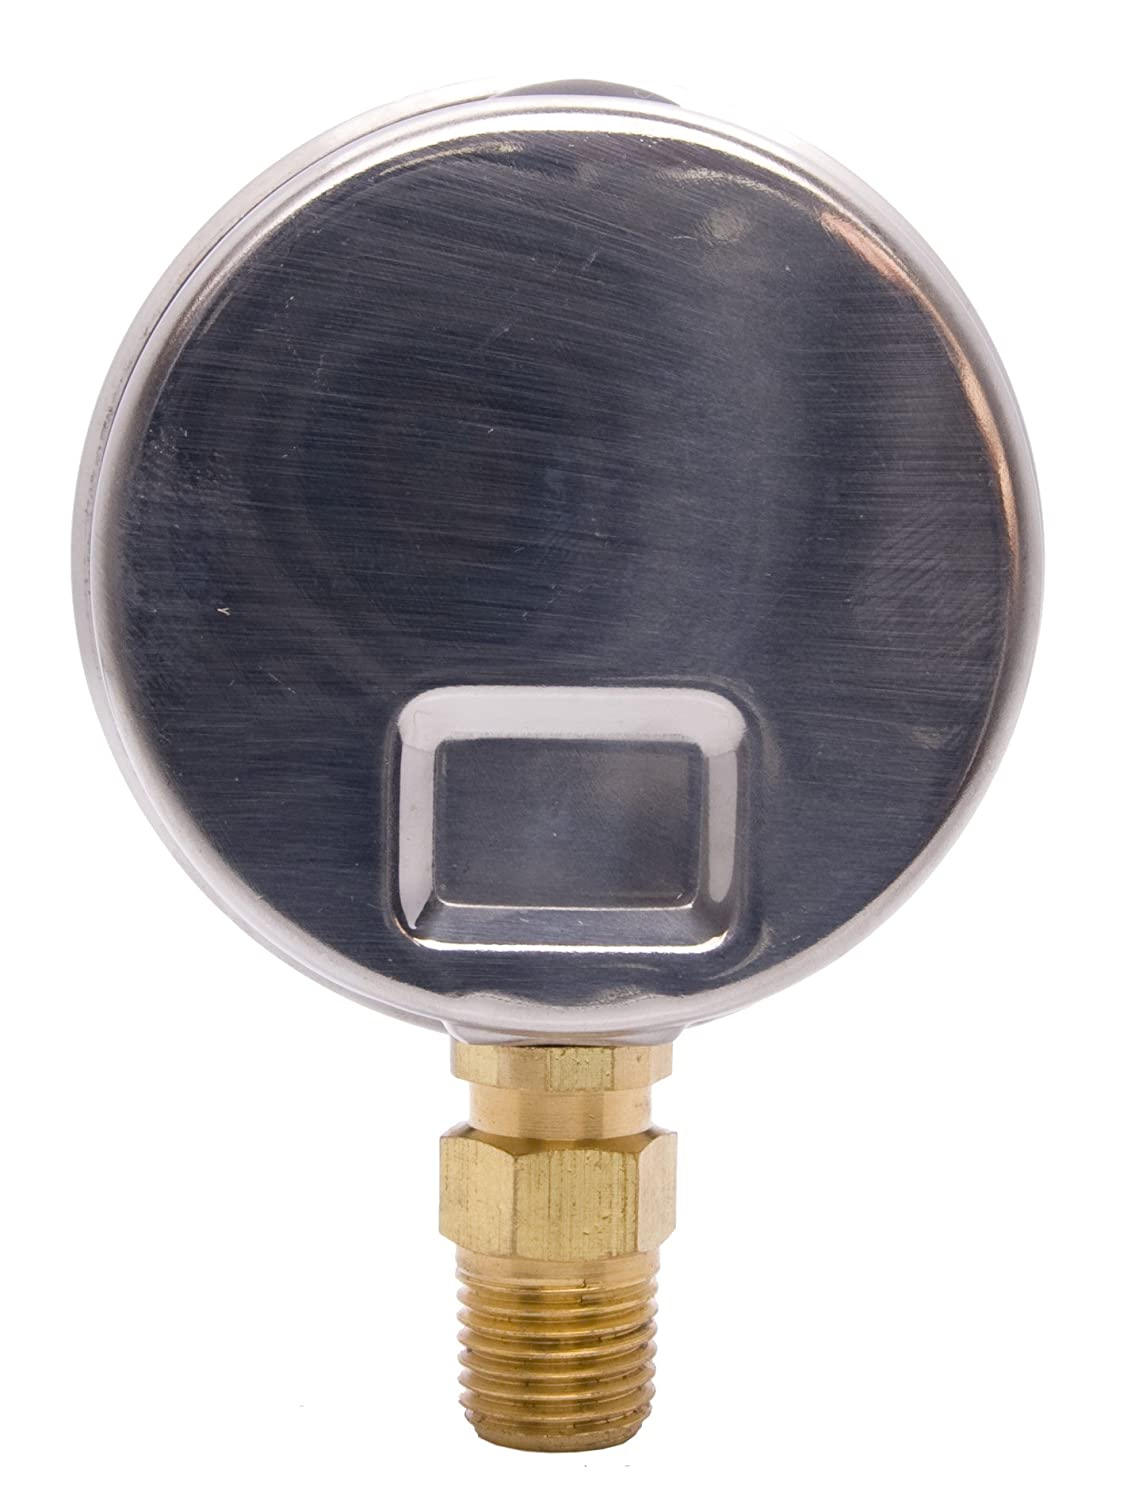 Stainless Steel Case 1//4 NPT Lower Mount Connection 0-160PSI 2-1//2 Oil Filled Pressure Gauge Brass